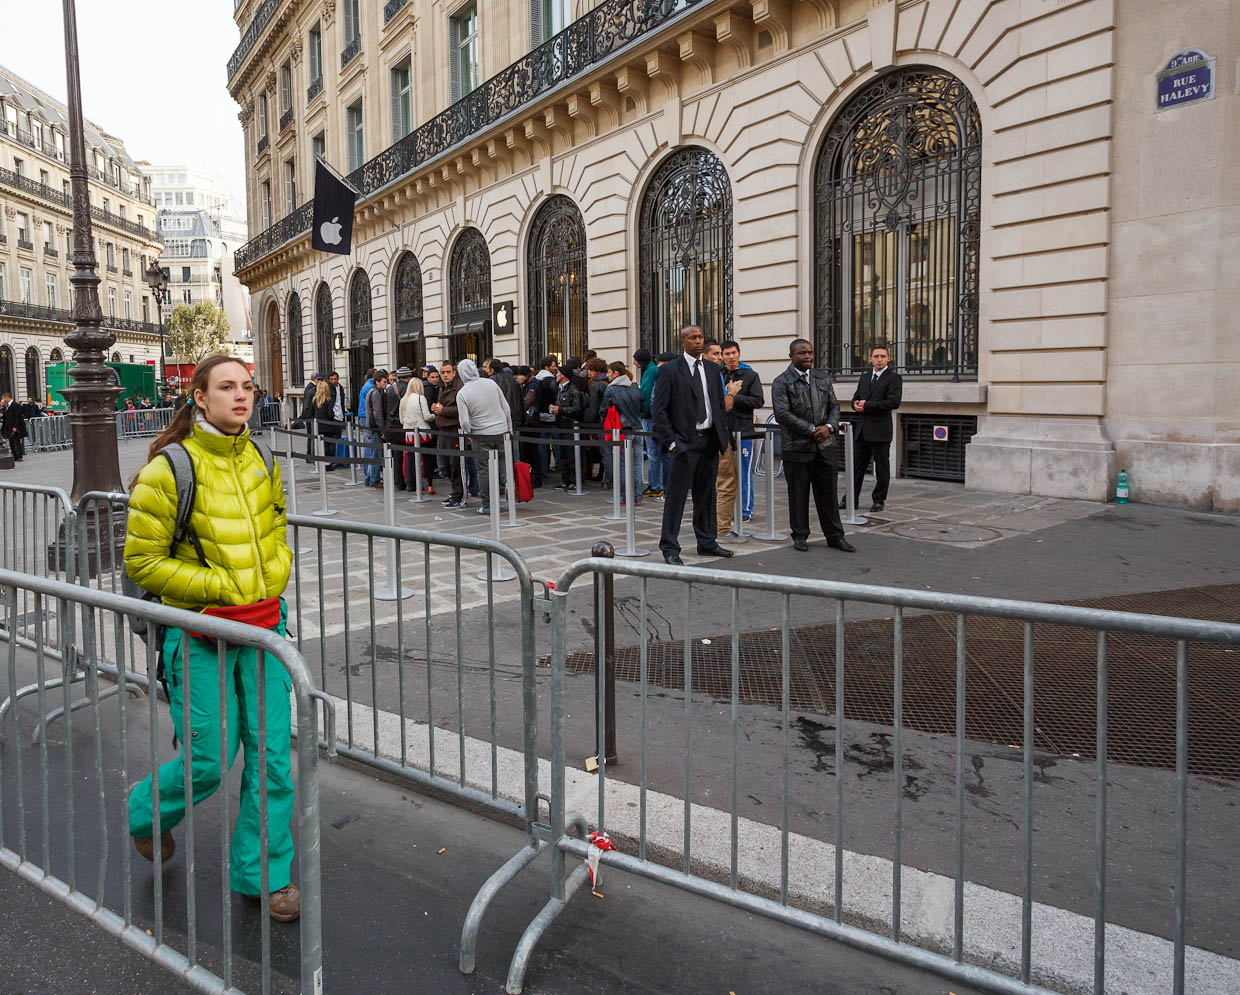 A new iPhone 5 customer emerges from an Apple store in Paris.